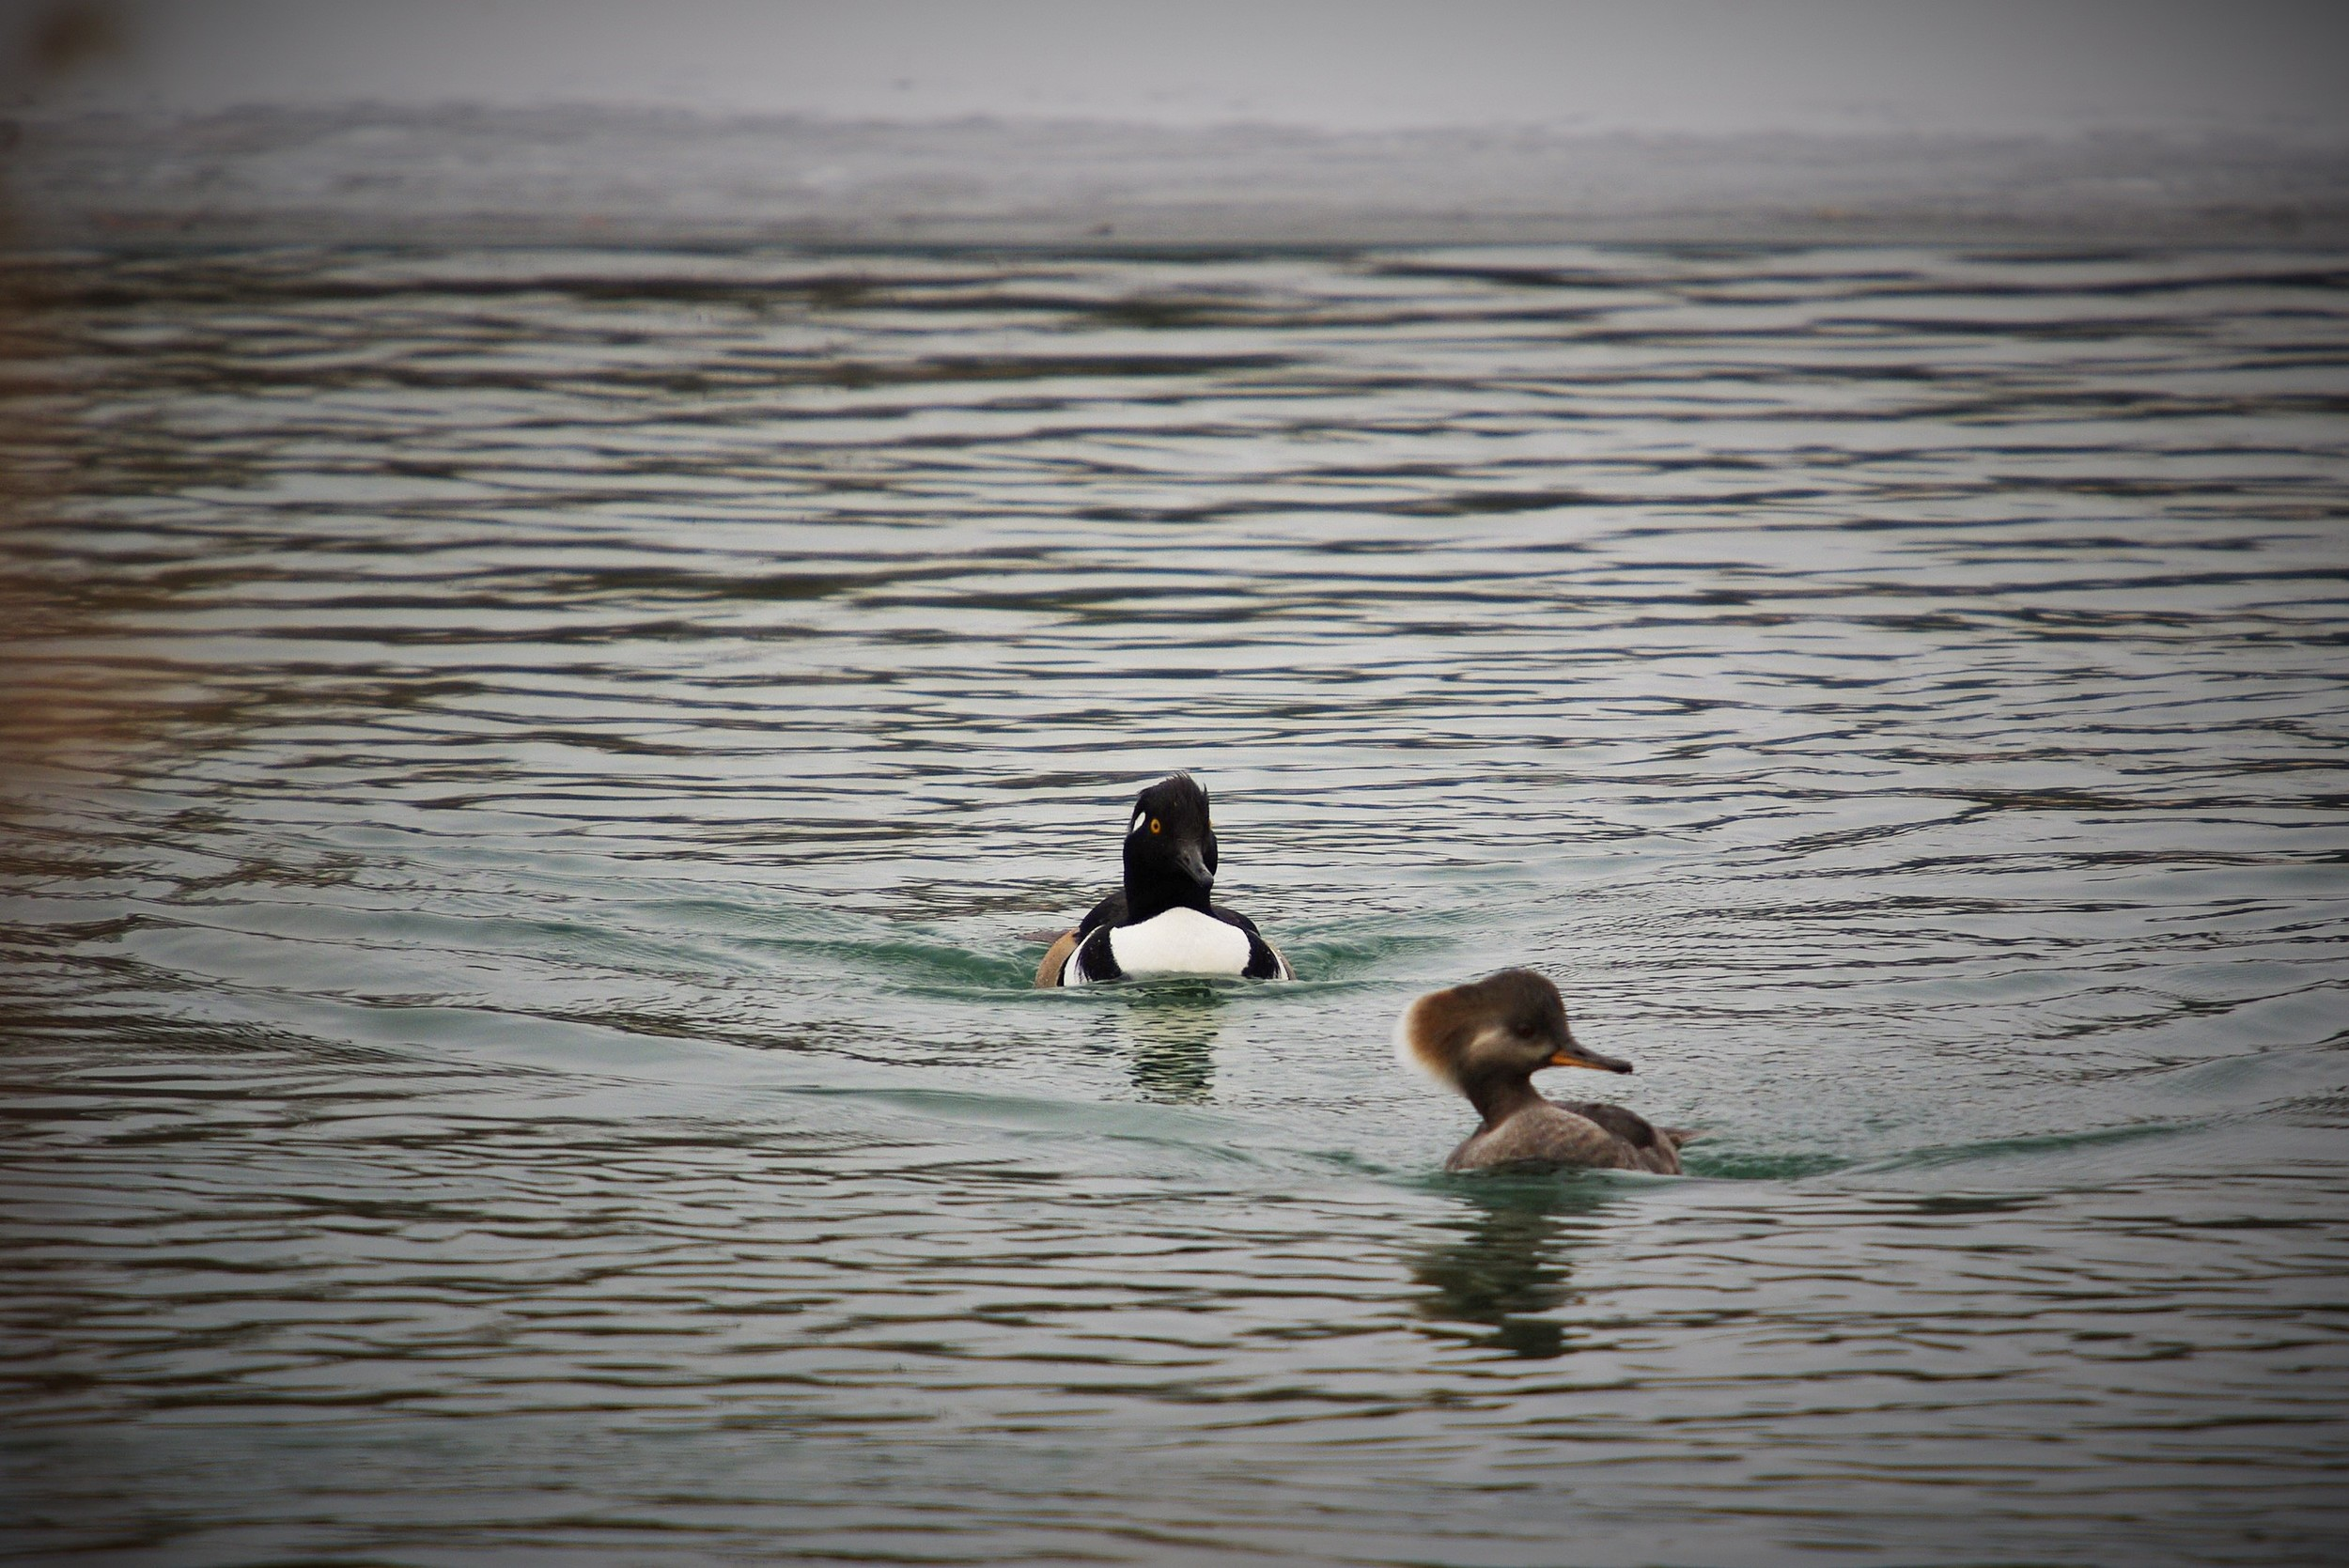 Migratory and wintering waterfowl such as hooded merganser, canvasback, red-head and ring-neck ducks, are a beautiful common sight in Post-Dispatch Lake. Photograph by Patrick Greenwald.